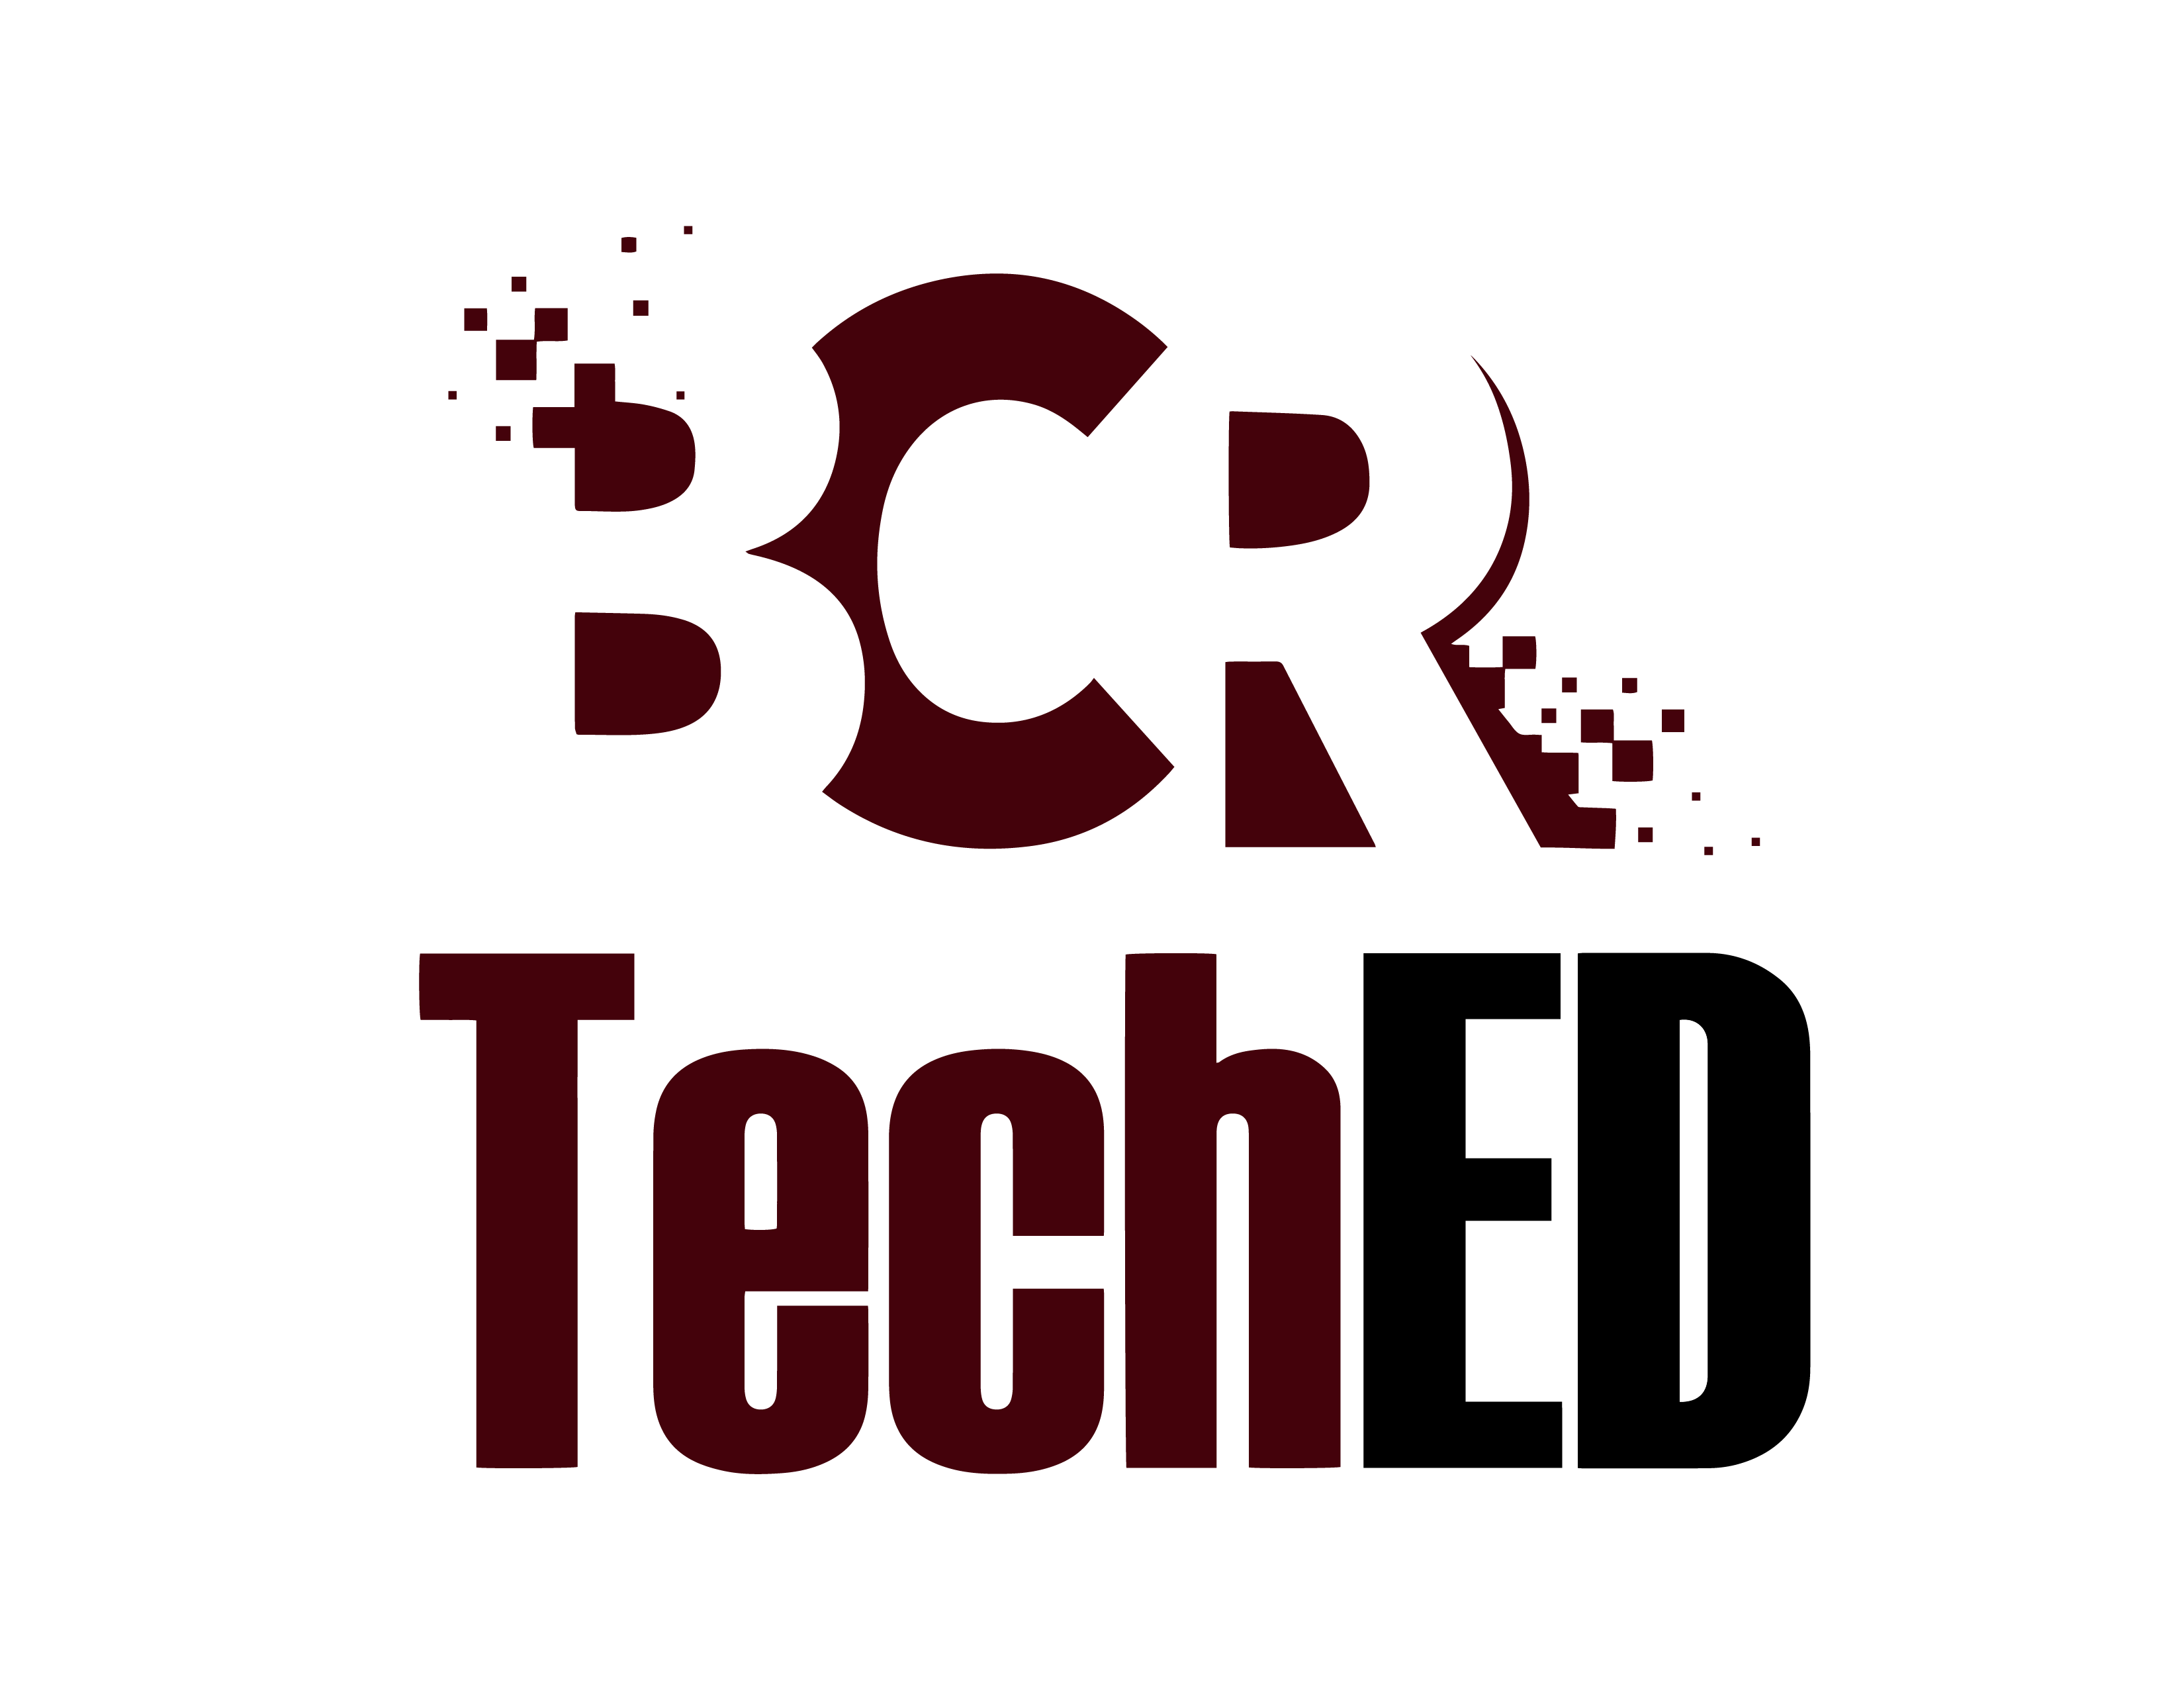 BCR TECHED